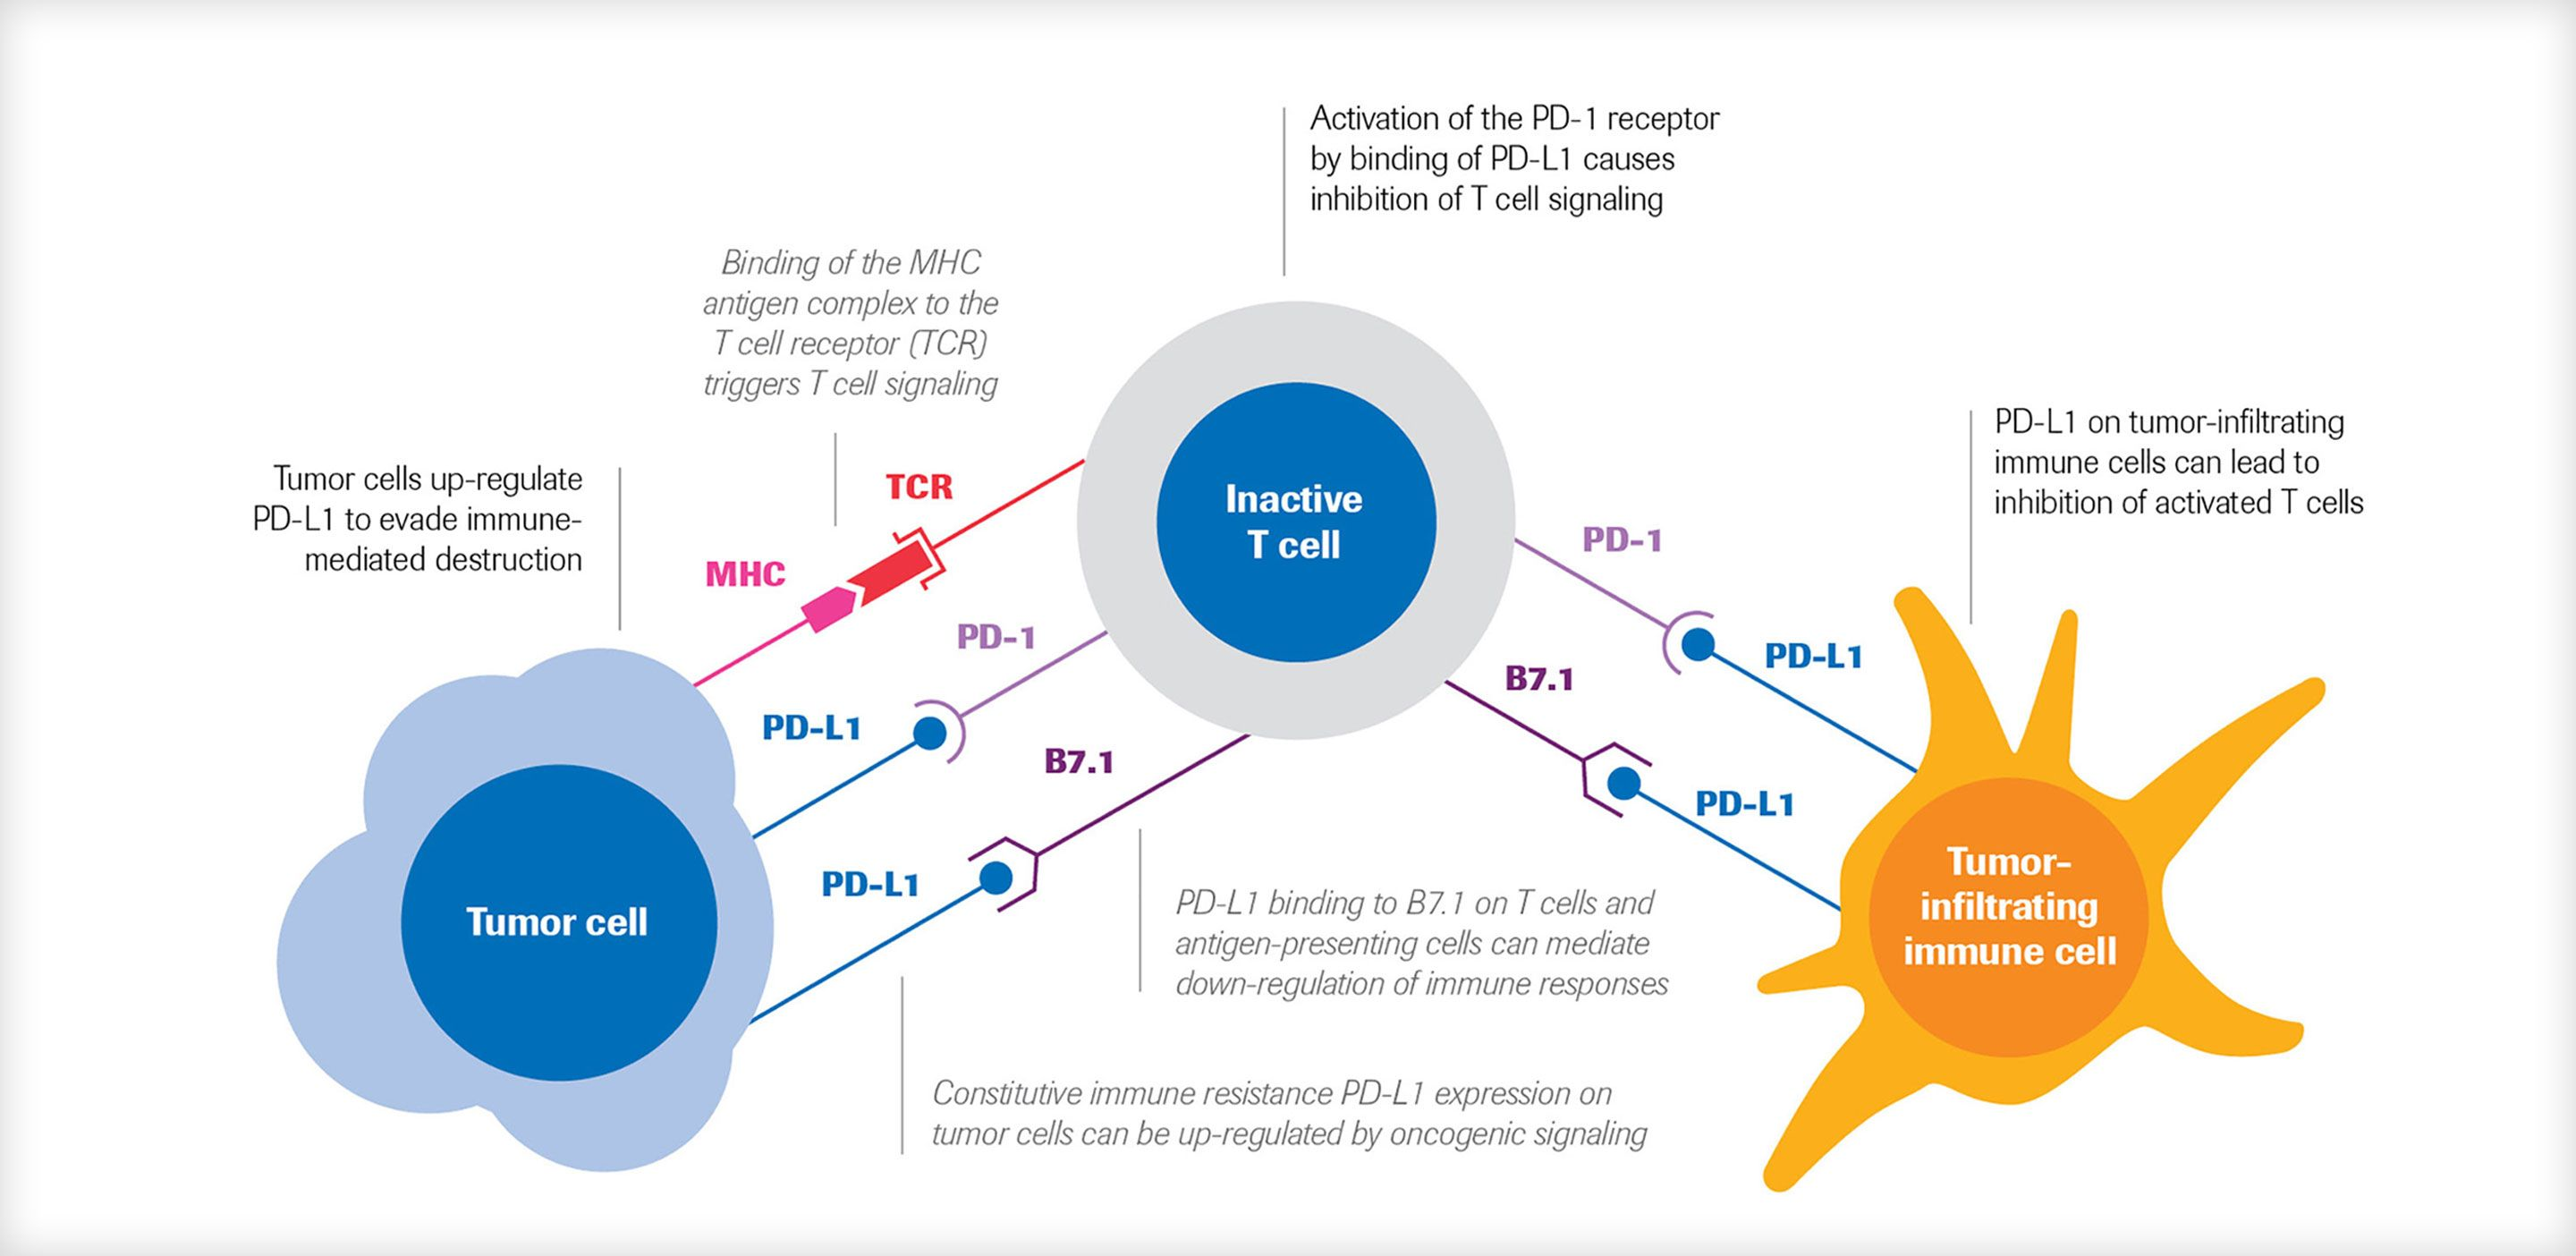 Roche PD-L1 immunological checkpoint image